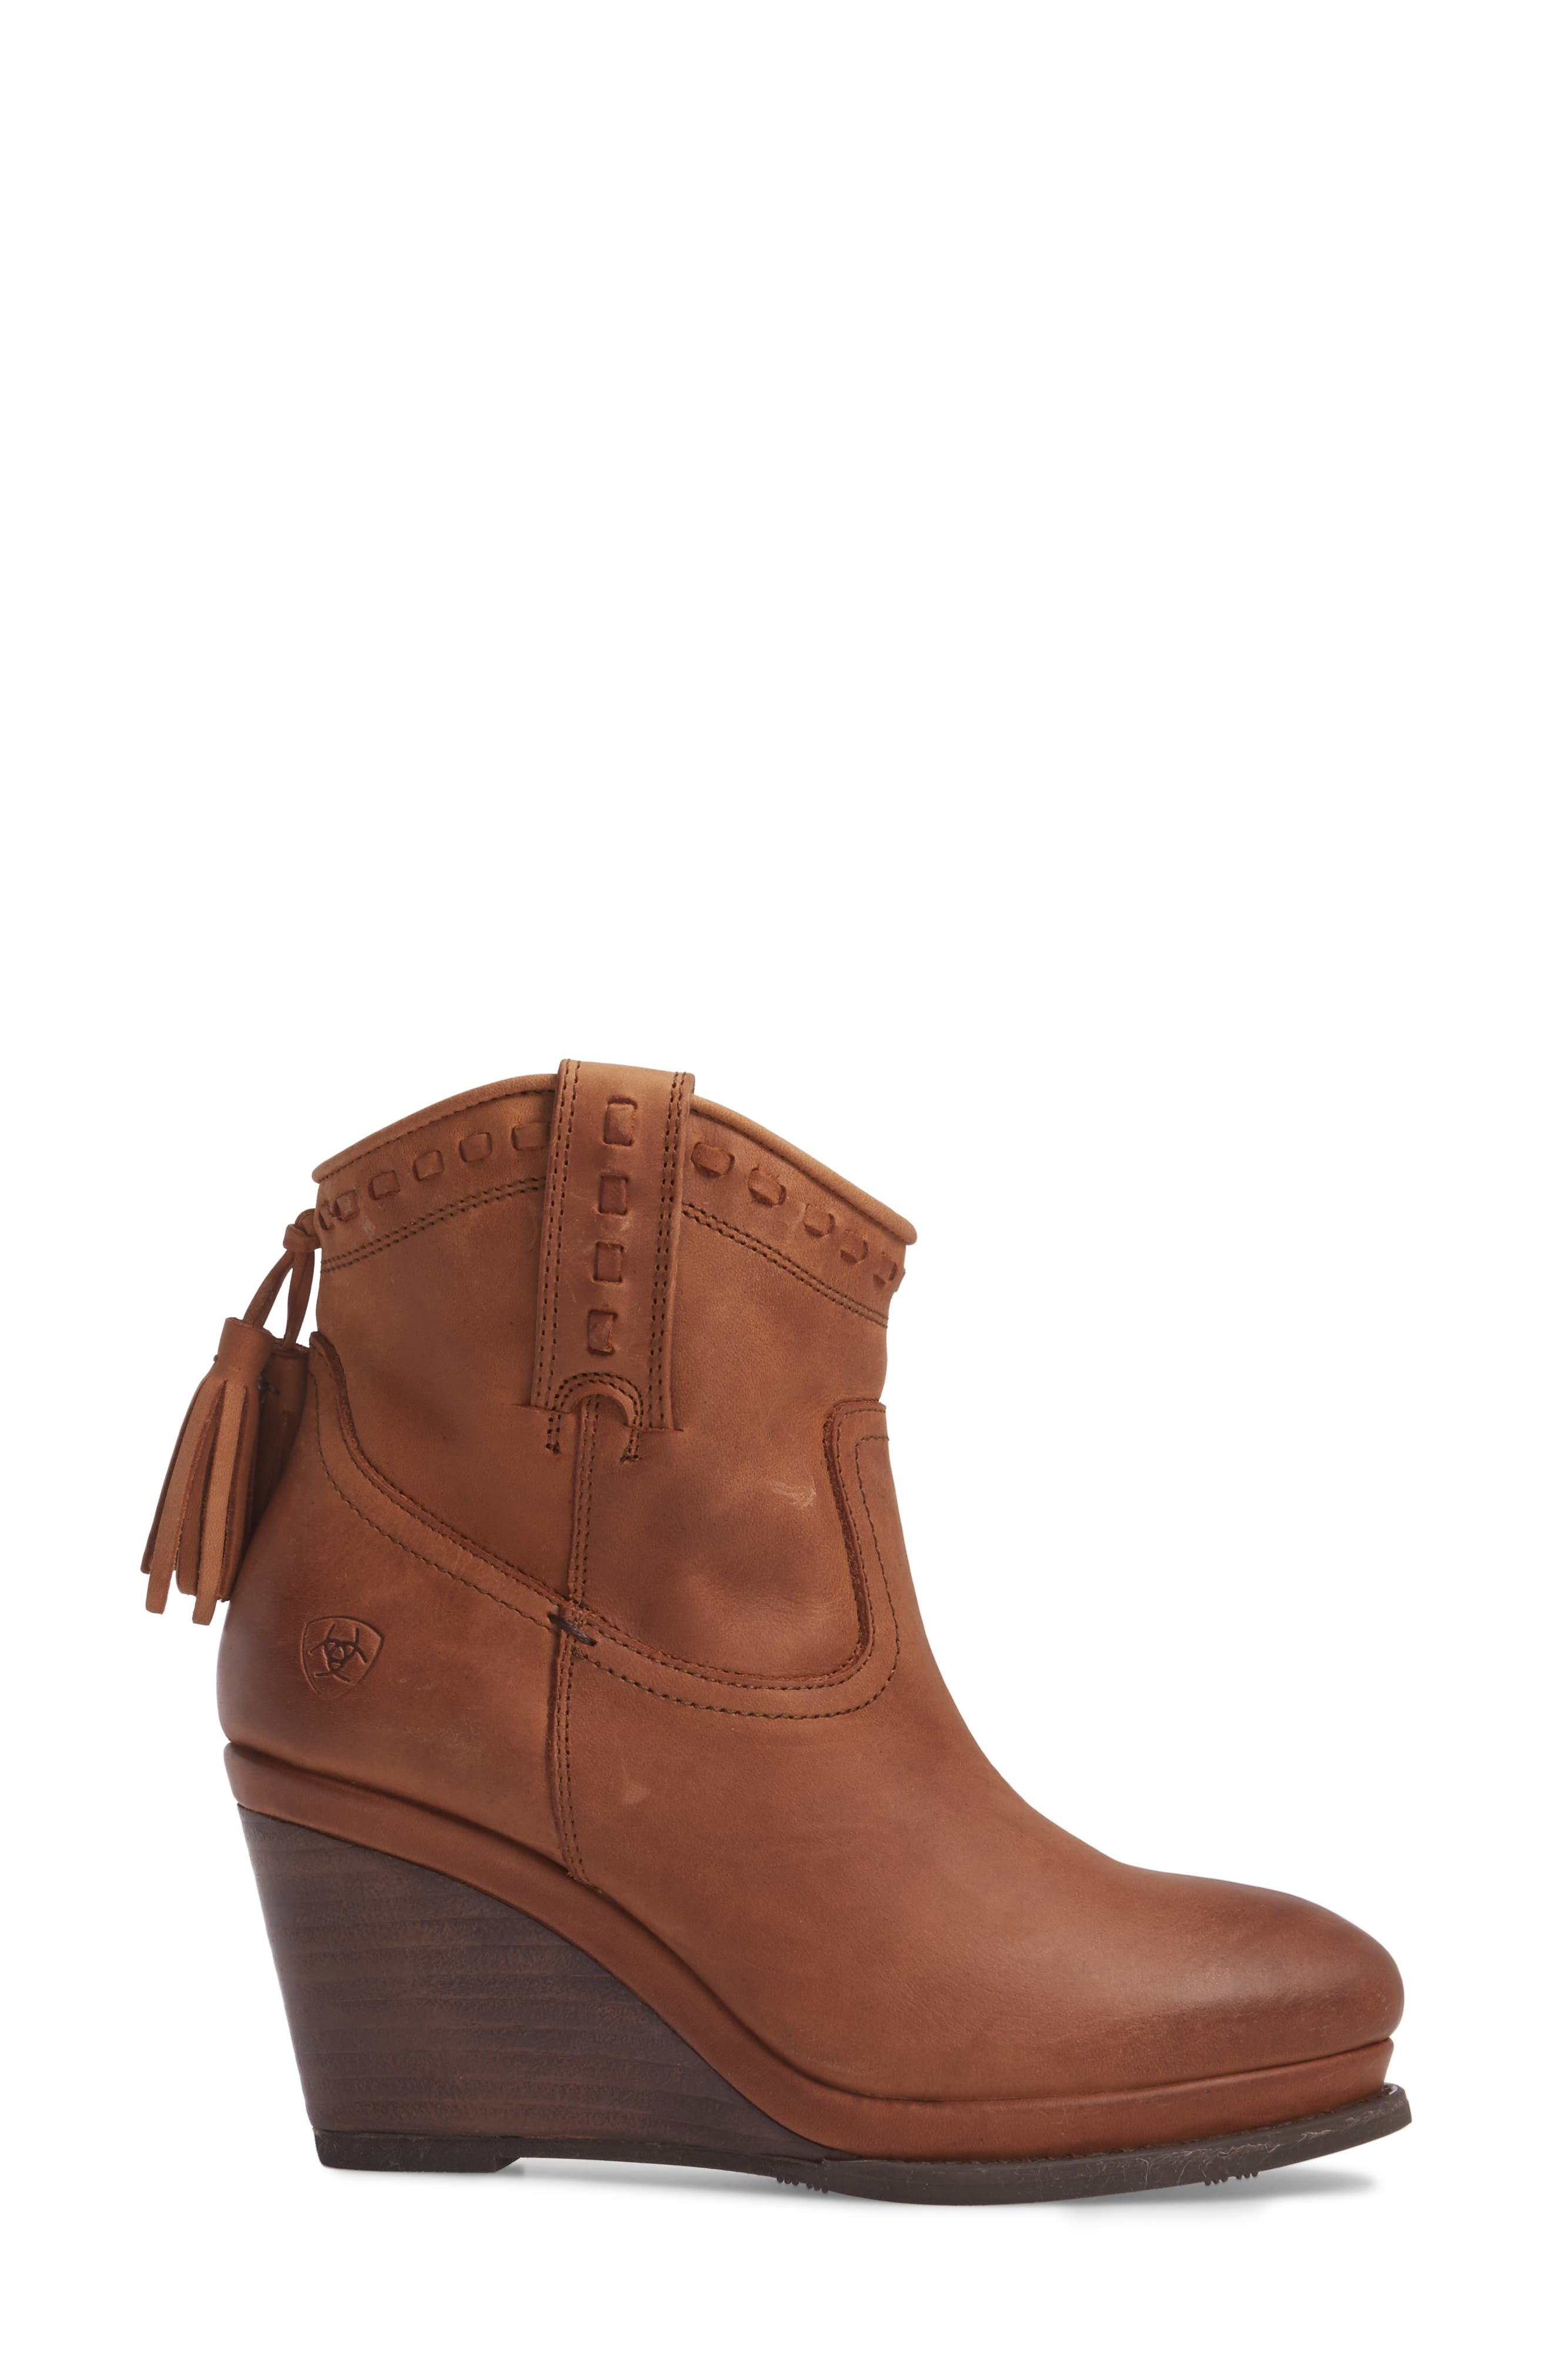 Alternate Image 3  - Ariat Broadway Western Wedge Boot (Women)